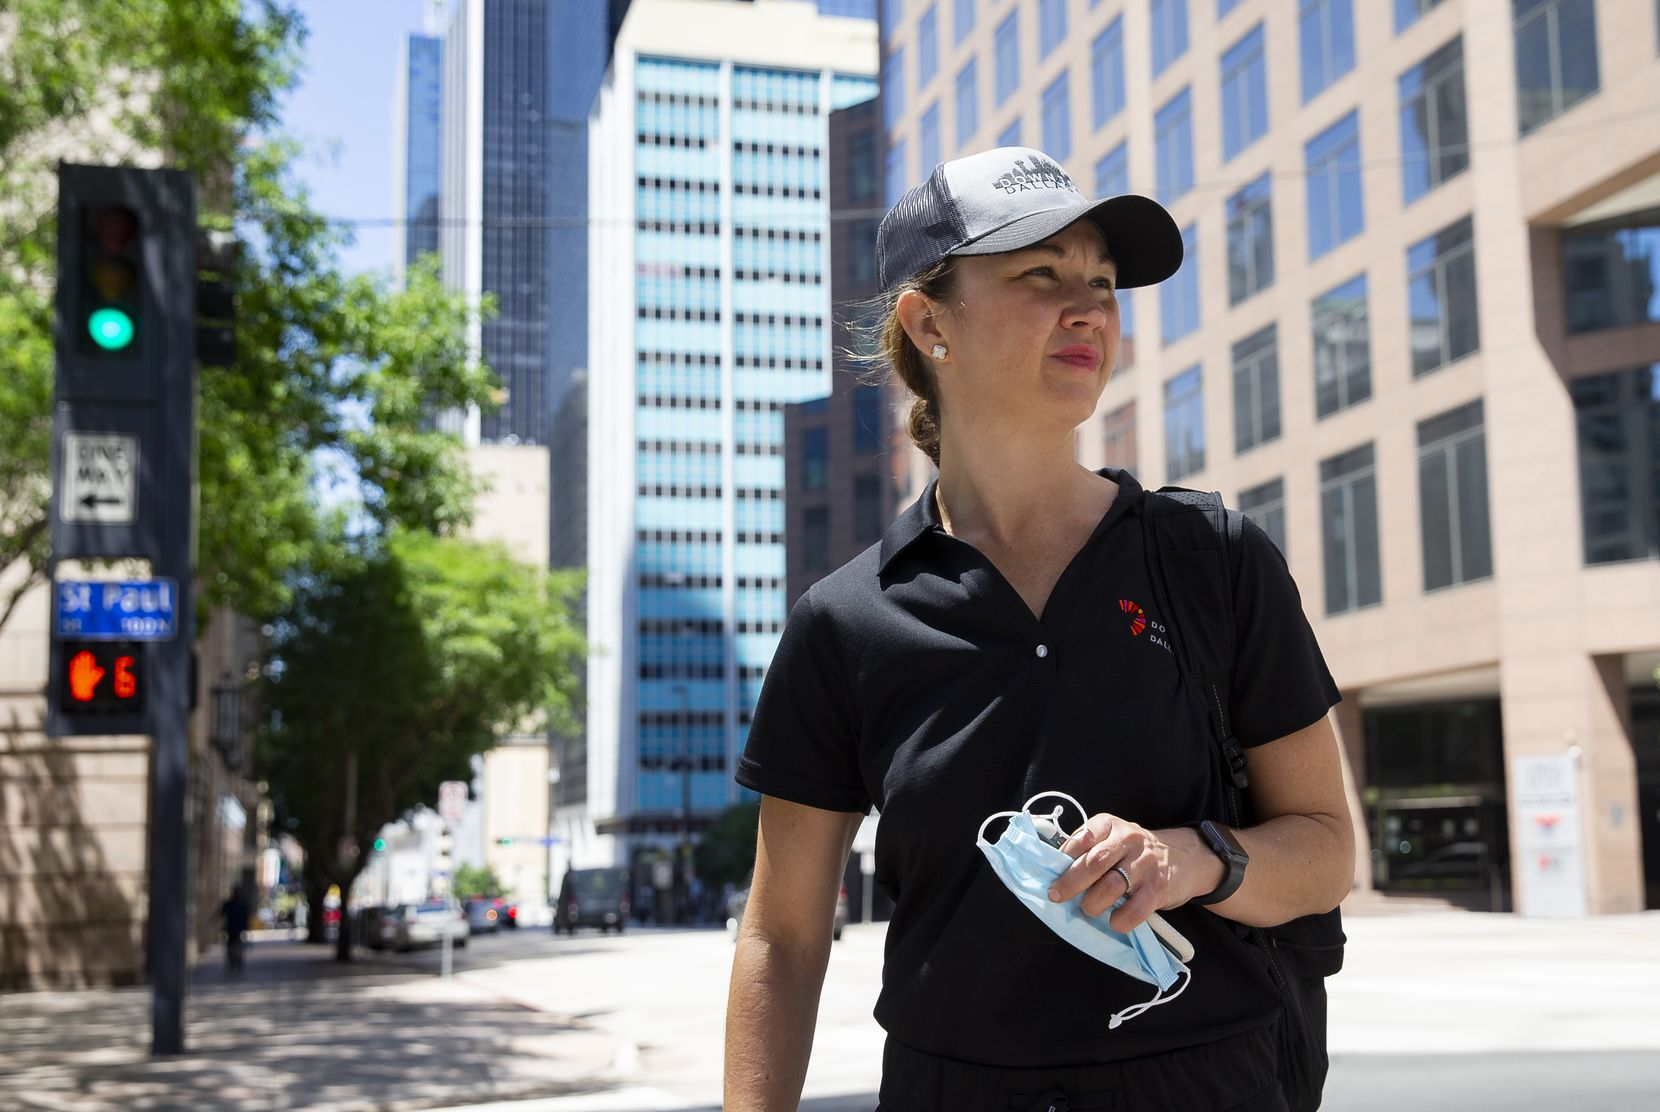 The morning after vandalism broke out May 29 of last year amid peaceful protests in downtown Dallas, Kourtny Garrett was on the streets helping clean up broken glass from damaged storefronts.